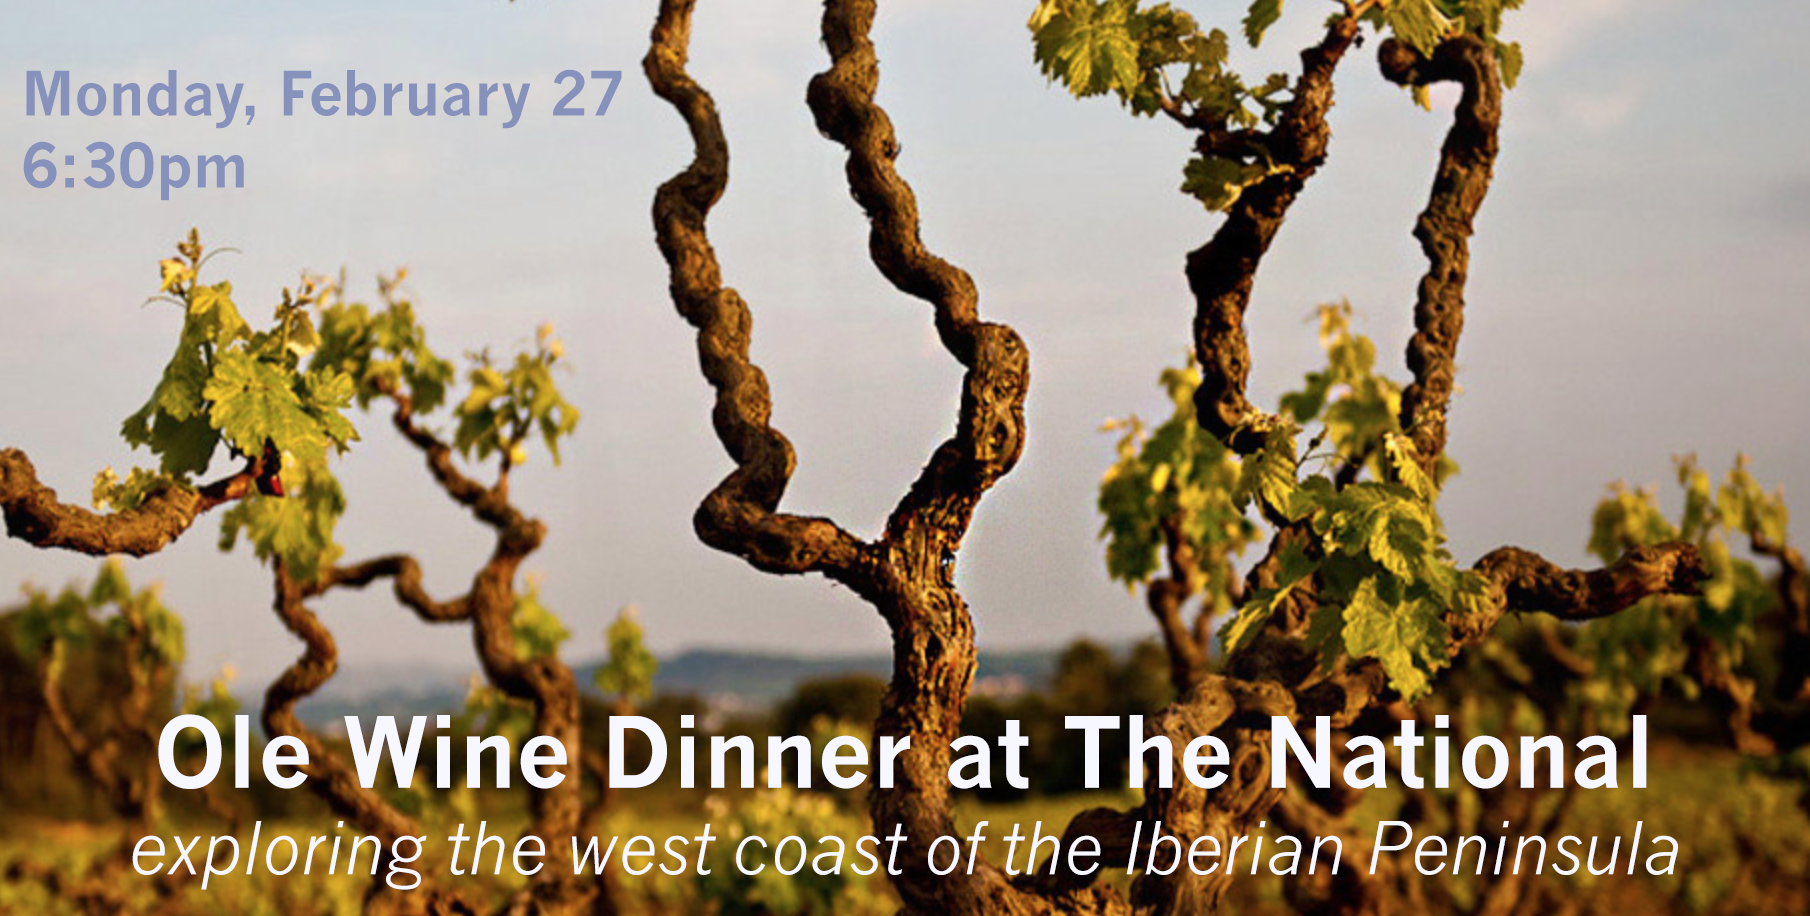 Join us as we tour the backroads of the winding west coast of Spain and Portugal. Through five courses paired with six wines, you'll be introduced to the largely unknown but incredible wines made from native grapes of the Iberian Peninsula. In partnership with Ole Imports and ABC Package, we bring you a wine dinner of exploration and flavor.   Seatings are available at 6:30pm on Monday, February 27 $70 per guest, plus tax and gratuity     On the Menu...   1. Serrano ham, almonds, olives, smoked mackerel spread, grilled bread  Poco do Lobo, Aristo, Bairrada, Portugal 1995   2. Salt cod salad, tomato, red and green pepper, spring Vidalia, black olive, egg, GA olive oil  Ferriol, Xarello, Penedés, Spain 2015    3. Broad River Pastures suckling guinea hog, mushrooms, kale and chorizo  A Portela, Mencia, Valdeorras, Spain 2014  and  Xisto Ilimitado, Touriga Franca-Tinta Amarela-Tinta Roriz, Douro, Portugal 2014    4. Community Meat Co. braised oxtails and crispy potatoes  Portal Tinto, Garnacha-Carignan-Merlot, Terra Alta, Spain 2012    5. artisanal cheeses with accompaniments   Dolc d'Orto Blanc, Garnacha Blanca, Montsant, Spain 2014   chocolates to finish      For reservations call 706-549-3450 or email reservations@thenationalrestaurant.com